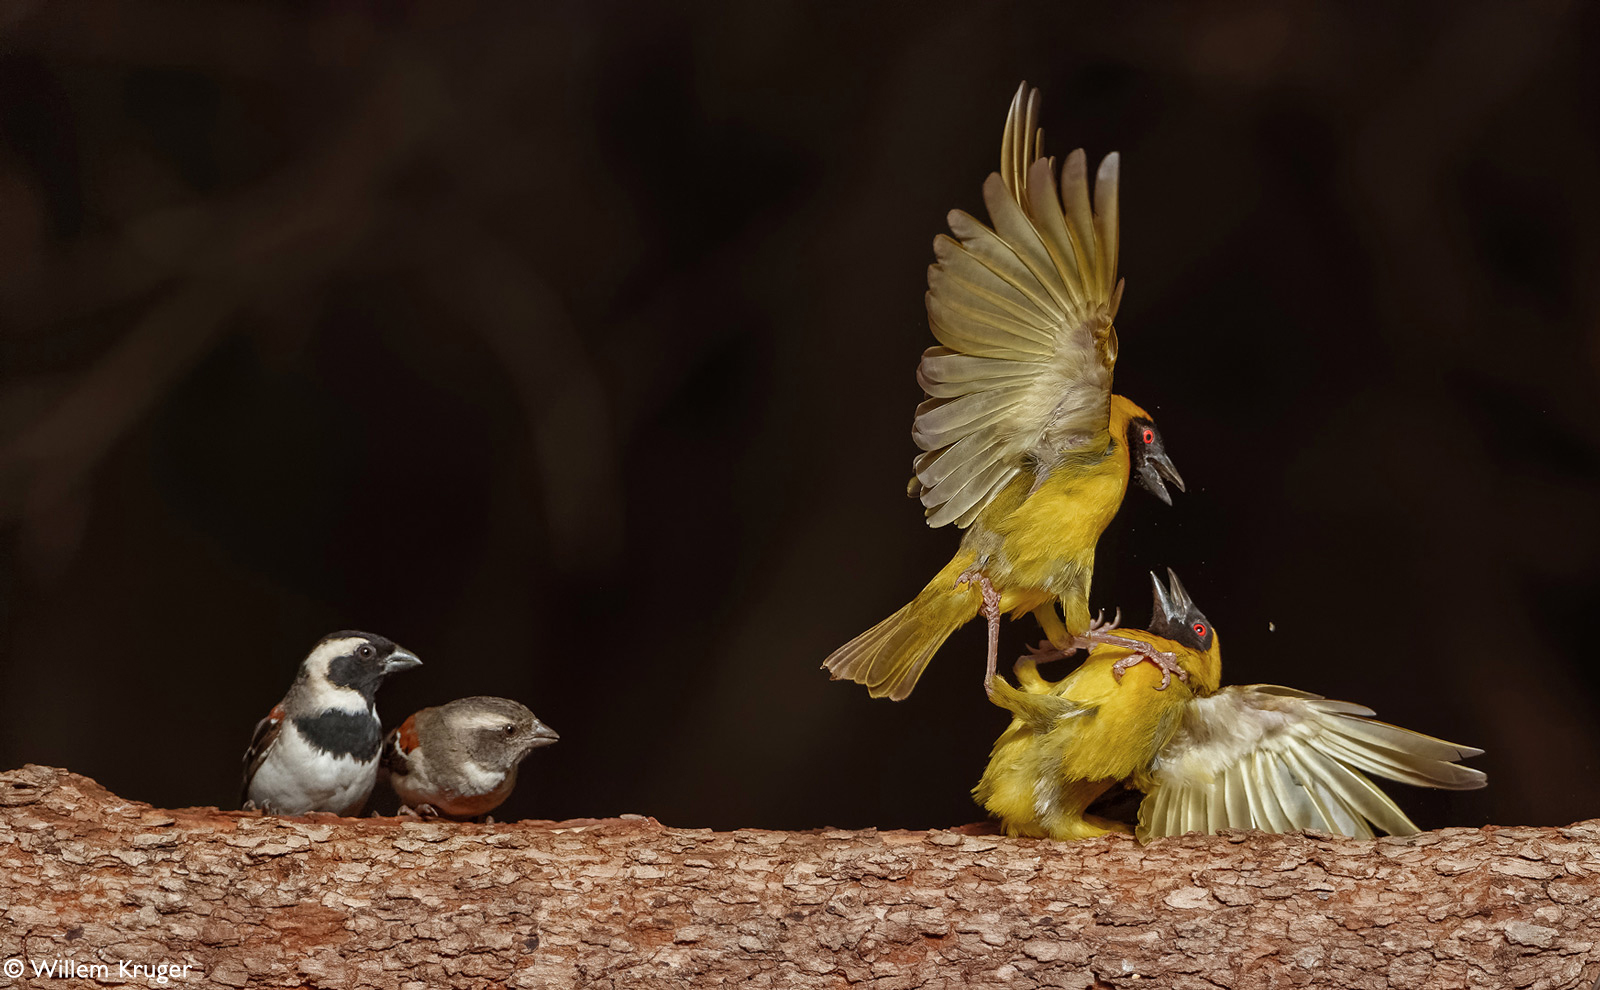 Two male southern masked weavers fight to establish dominance while sparrows watch on. Bloemfontein, South Africa © Willem Kruger